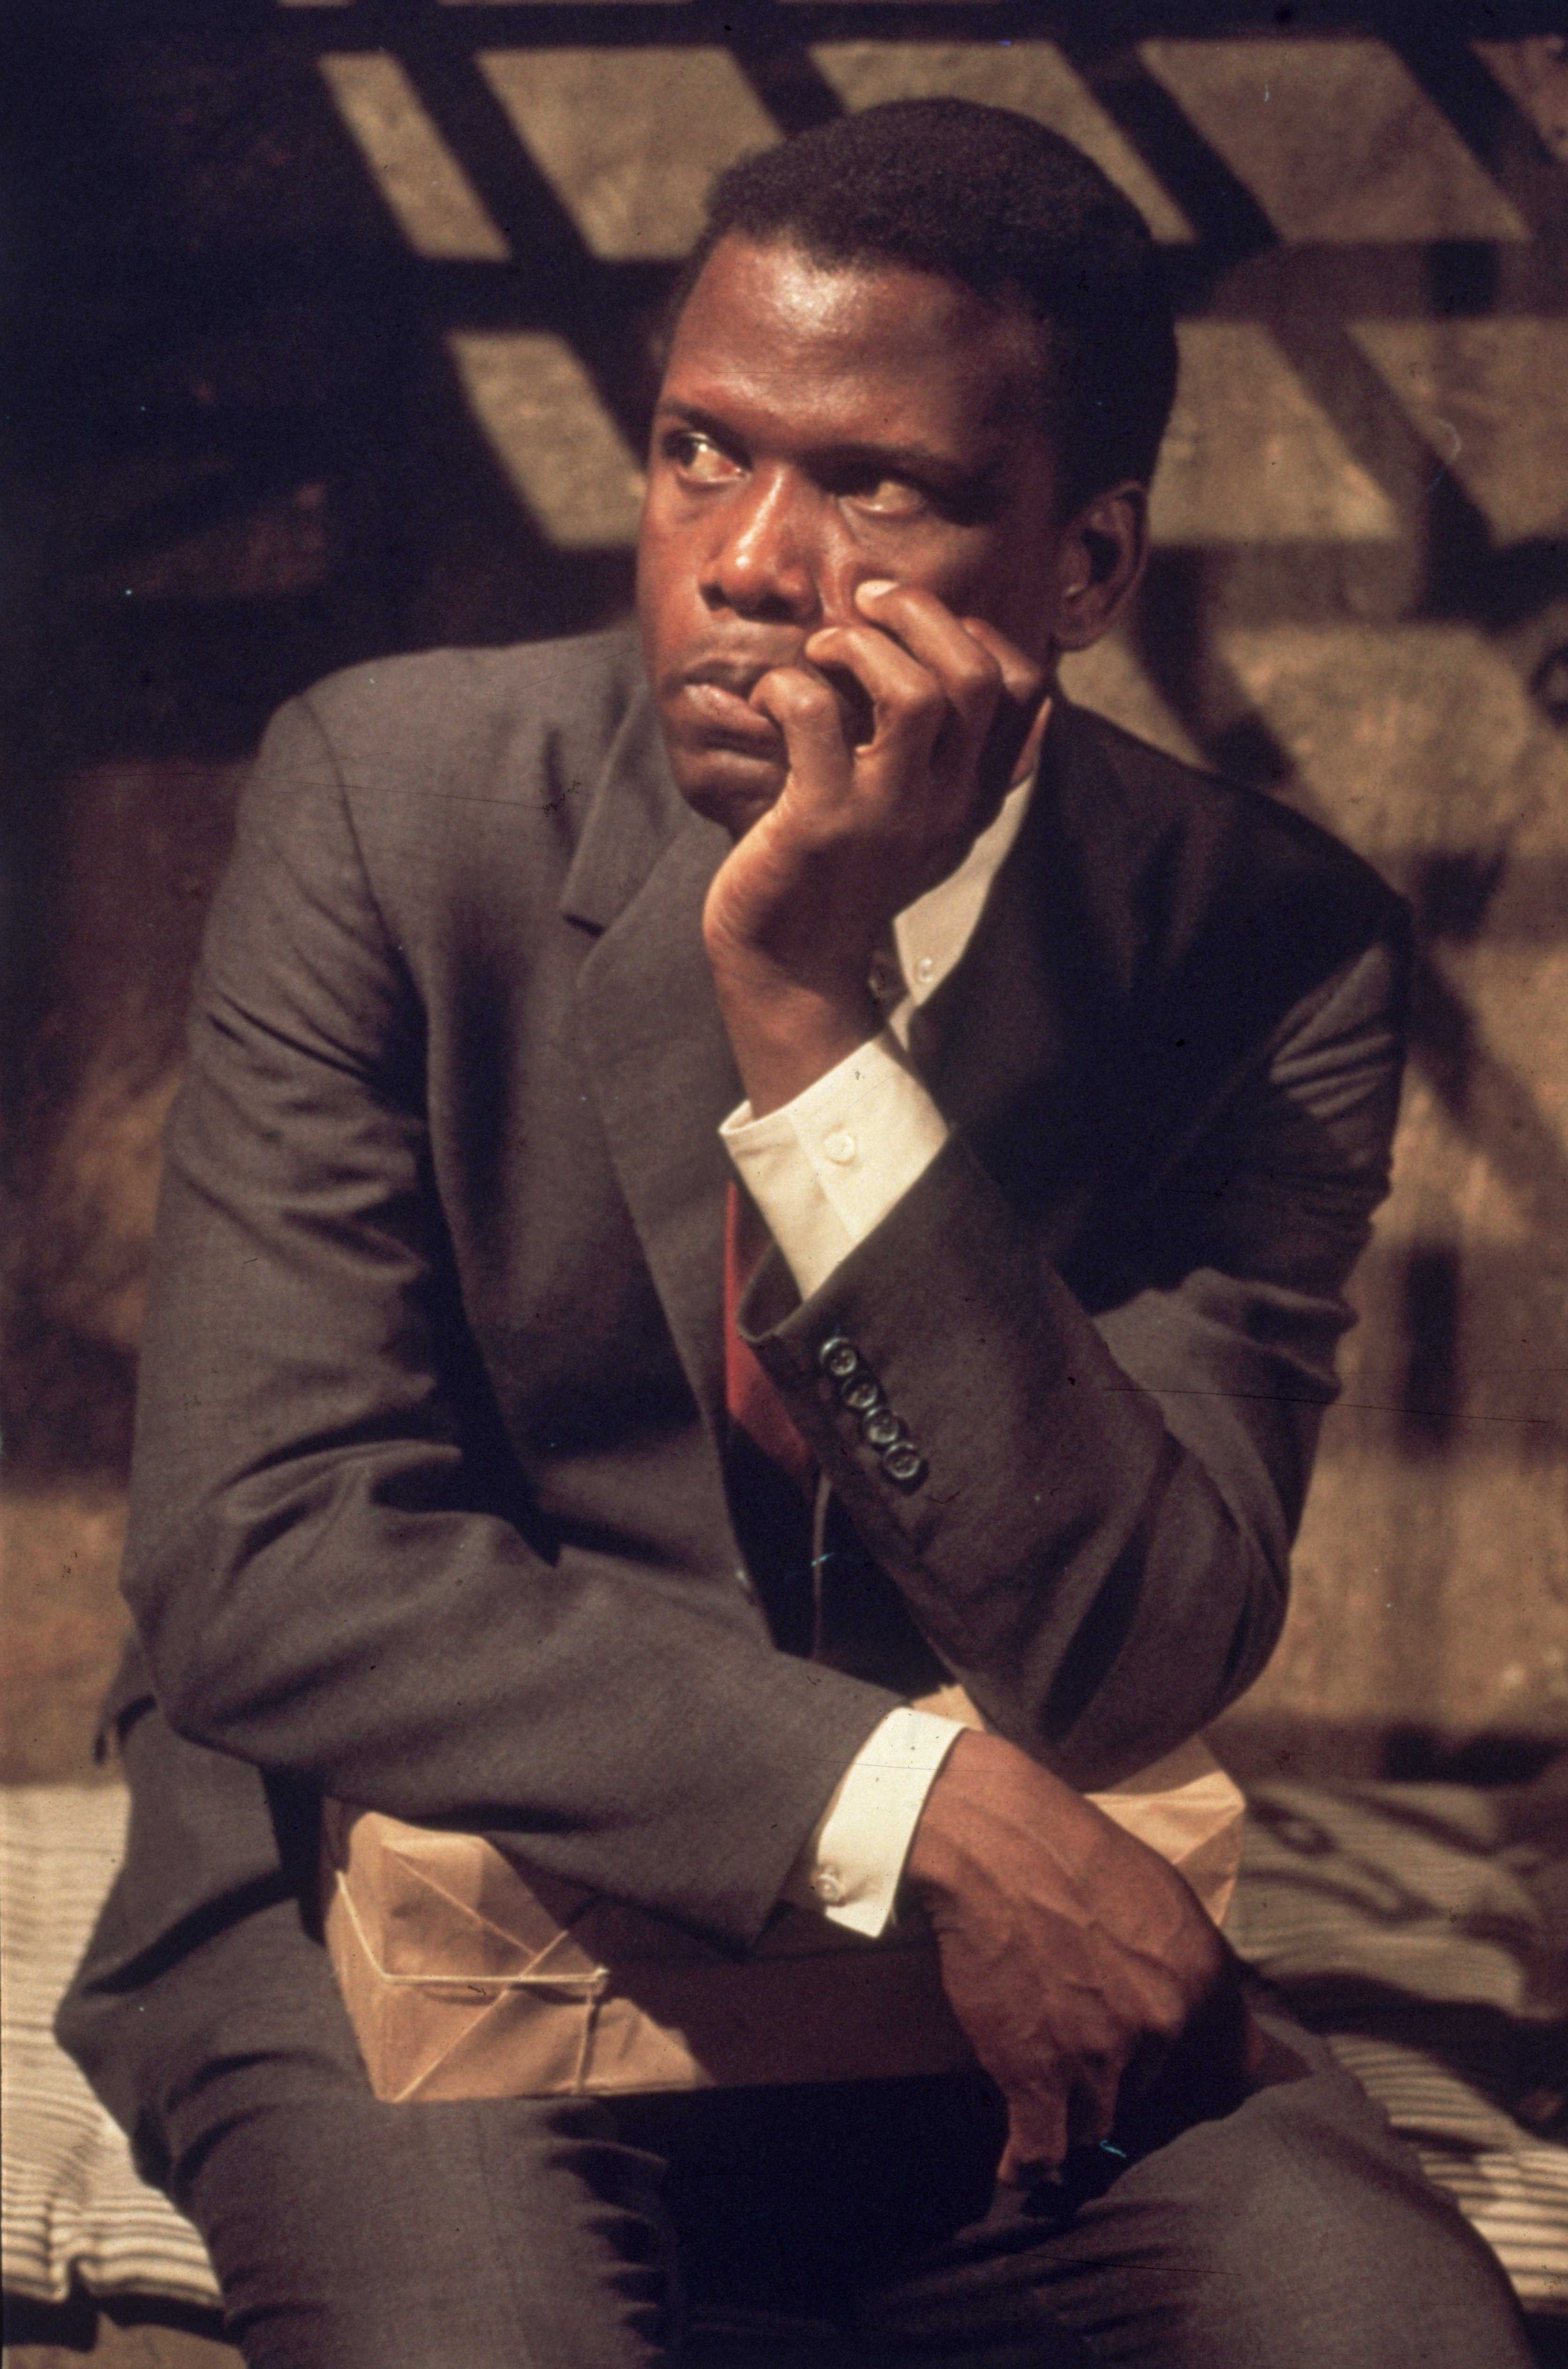 """Sidney Poitier photographed while filming """"In the Heat of the Night"""" in 1967 